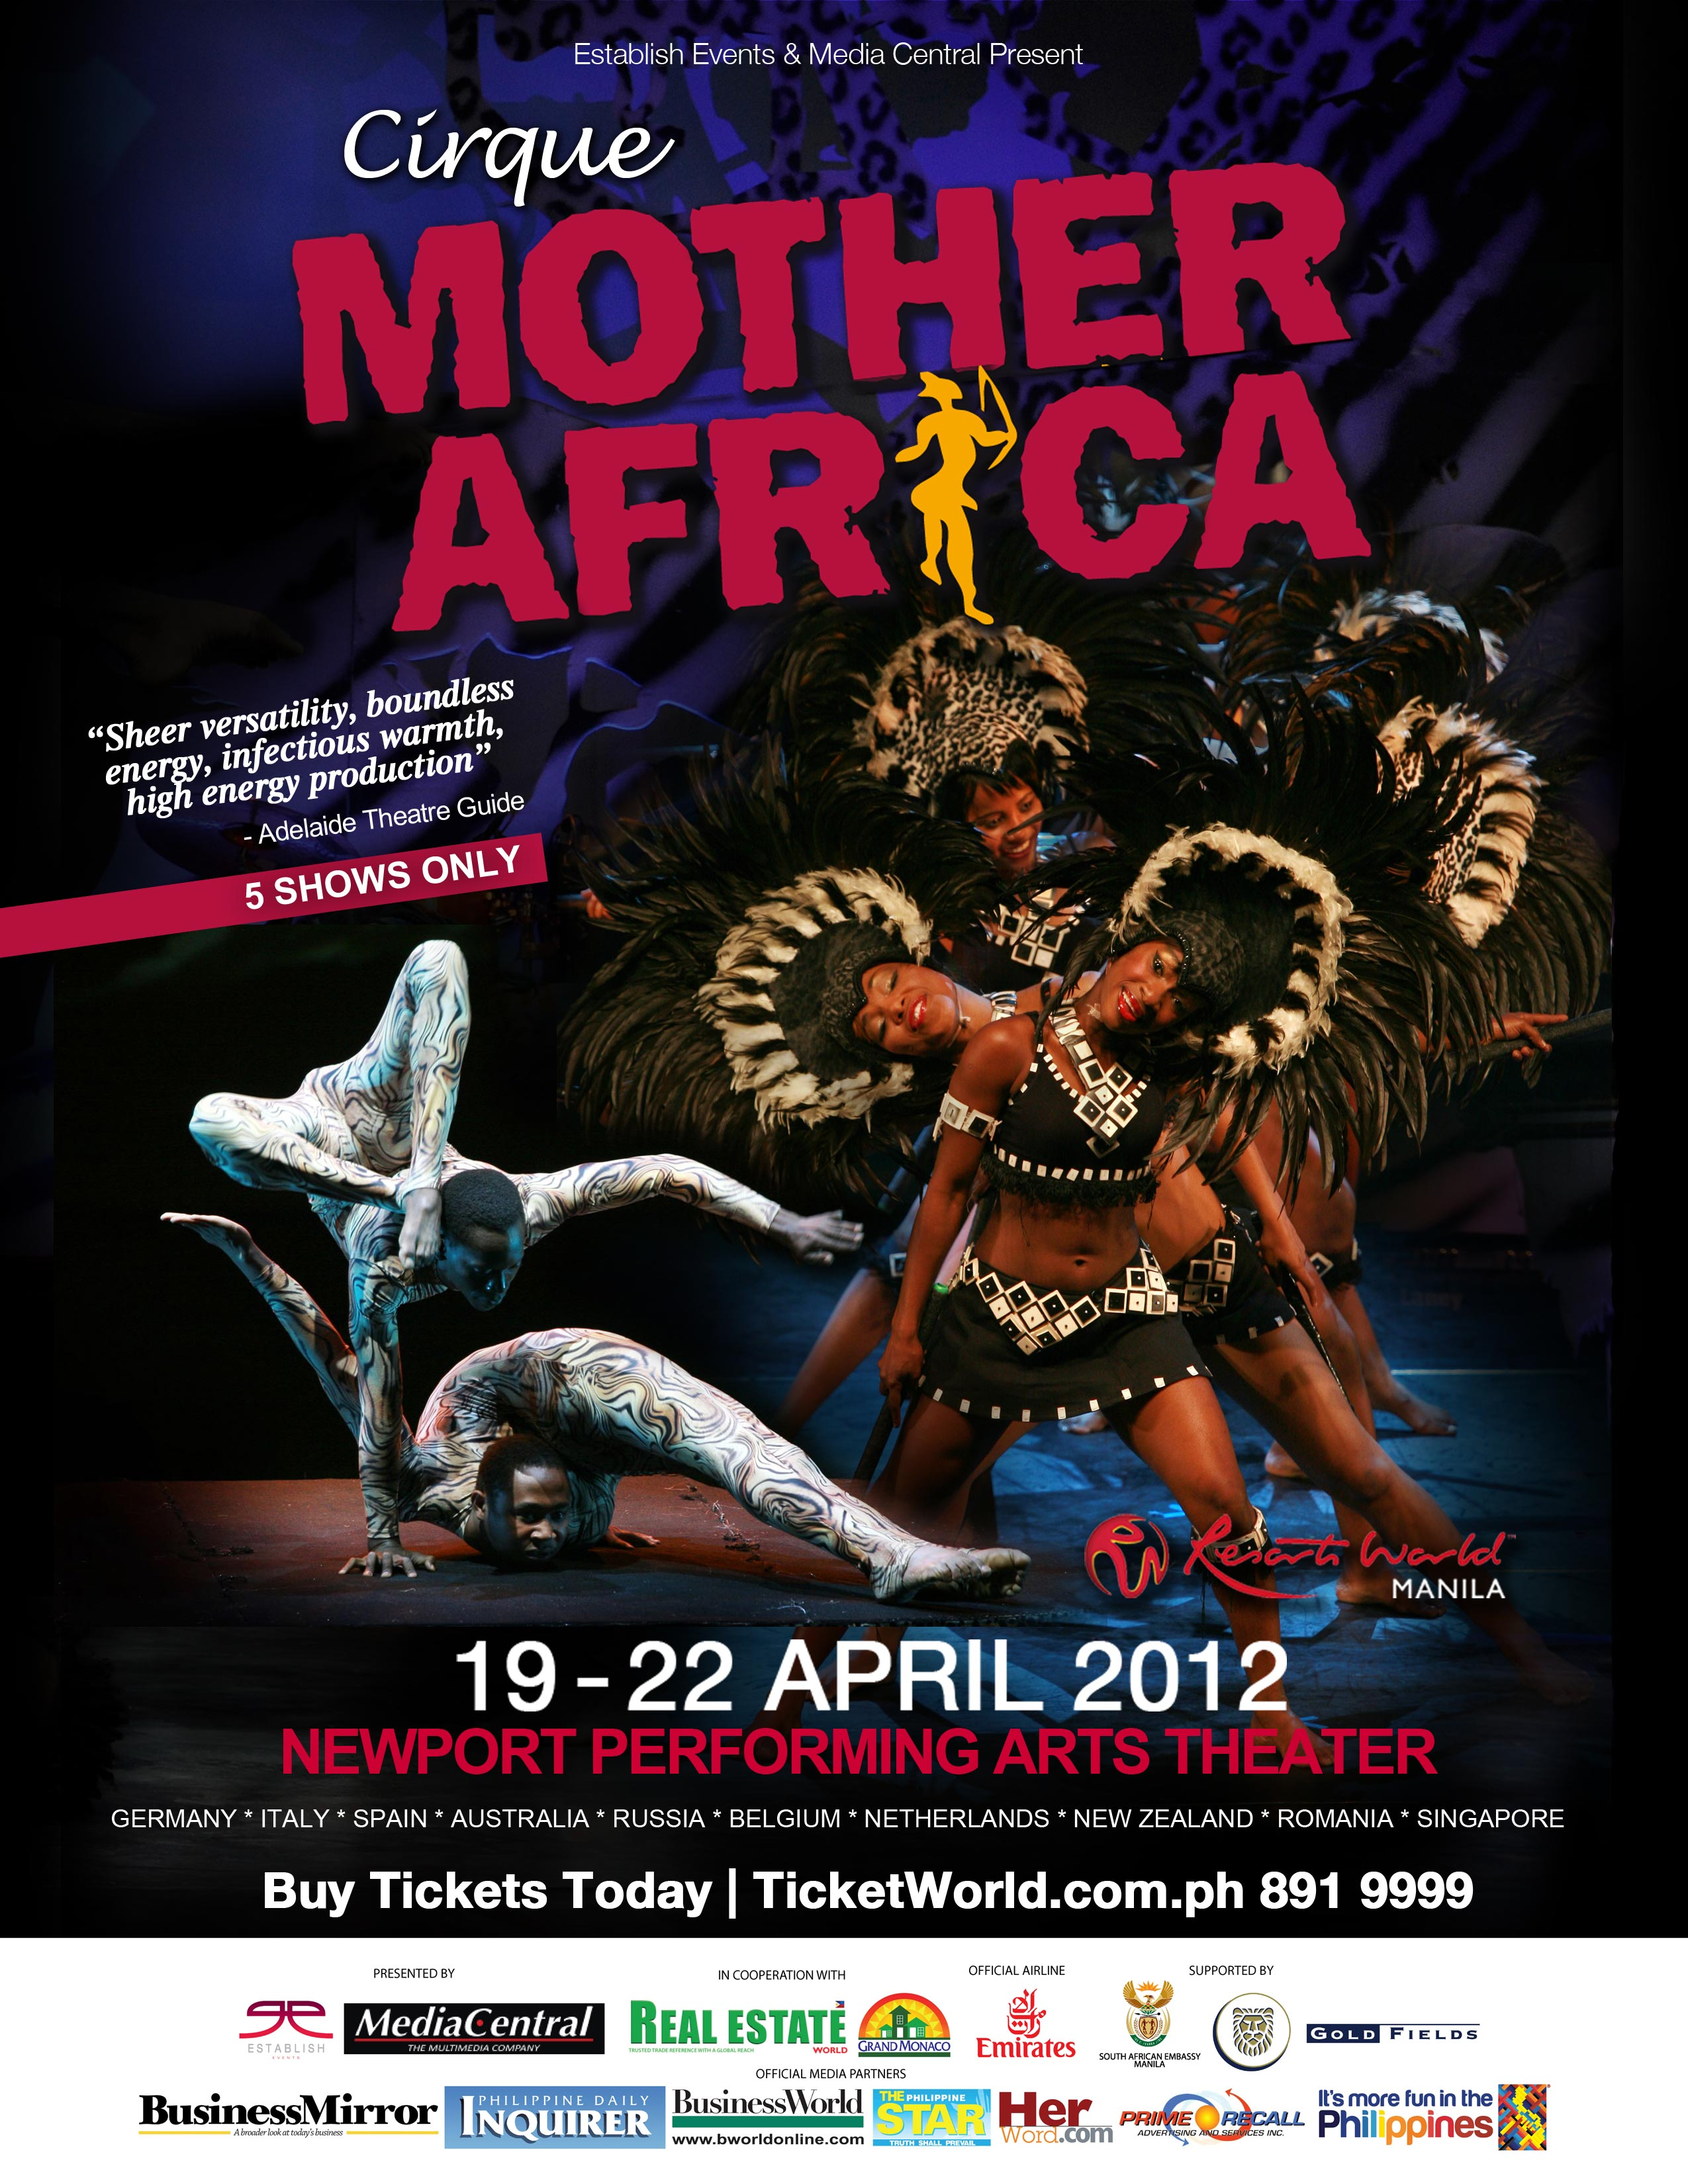 Cirque Mother Africa at Resorts World Manila